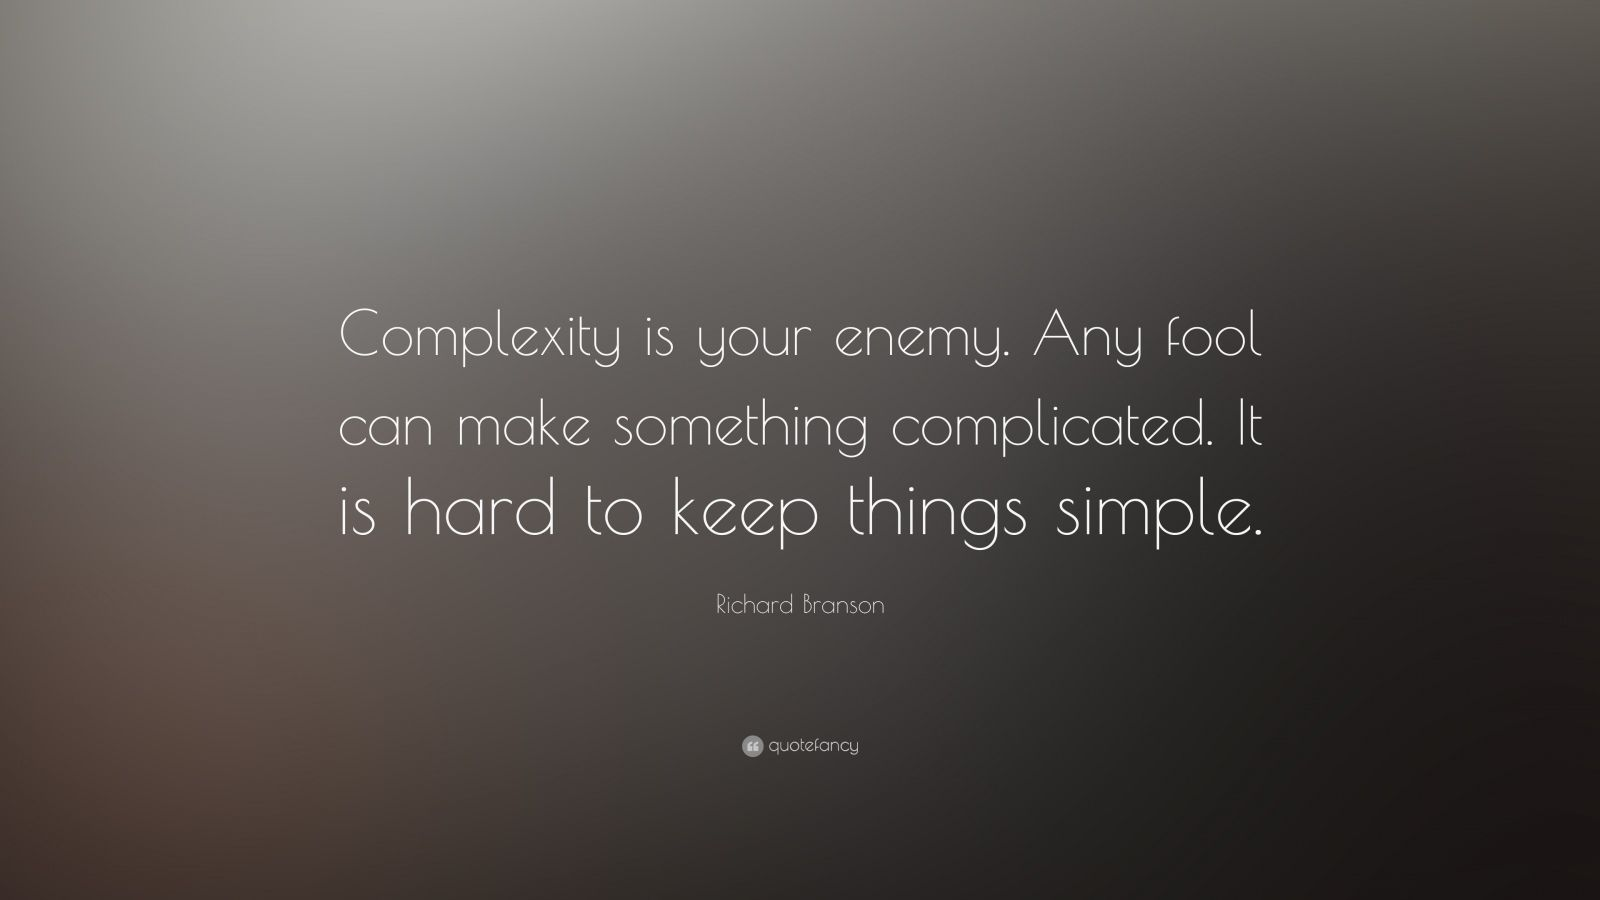 Motivation Business Quotes Wallpaper Hd Desktop Richard Branson Quote Complexity Is Your Enemy Any Fool